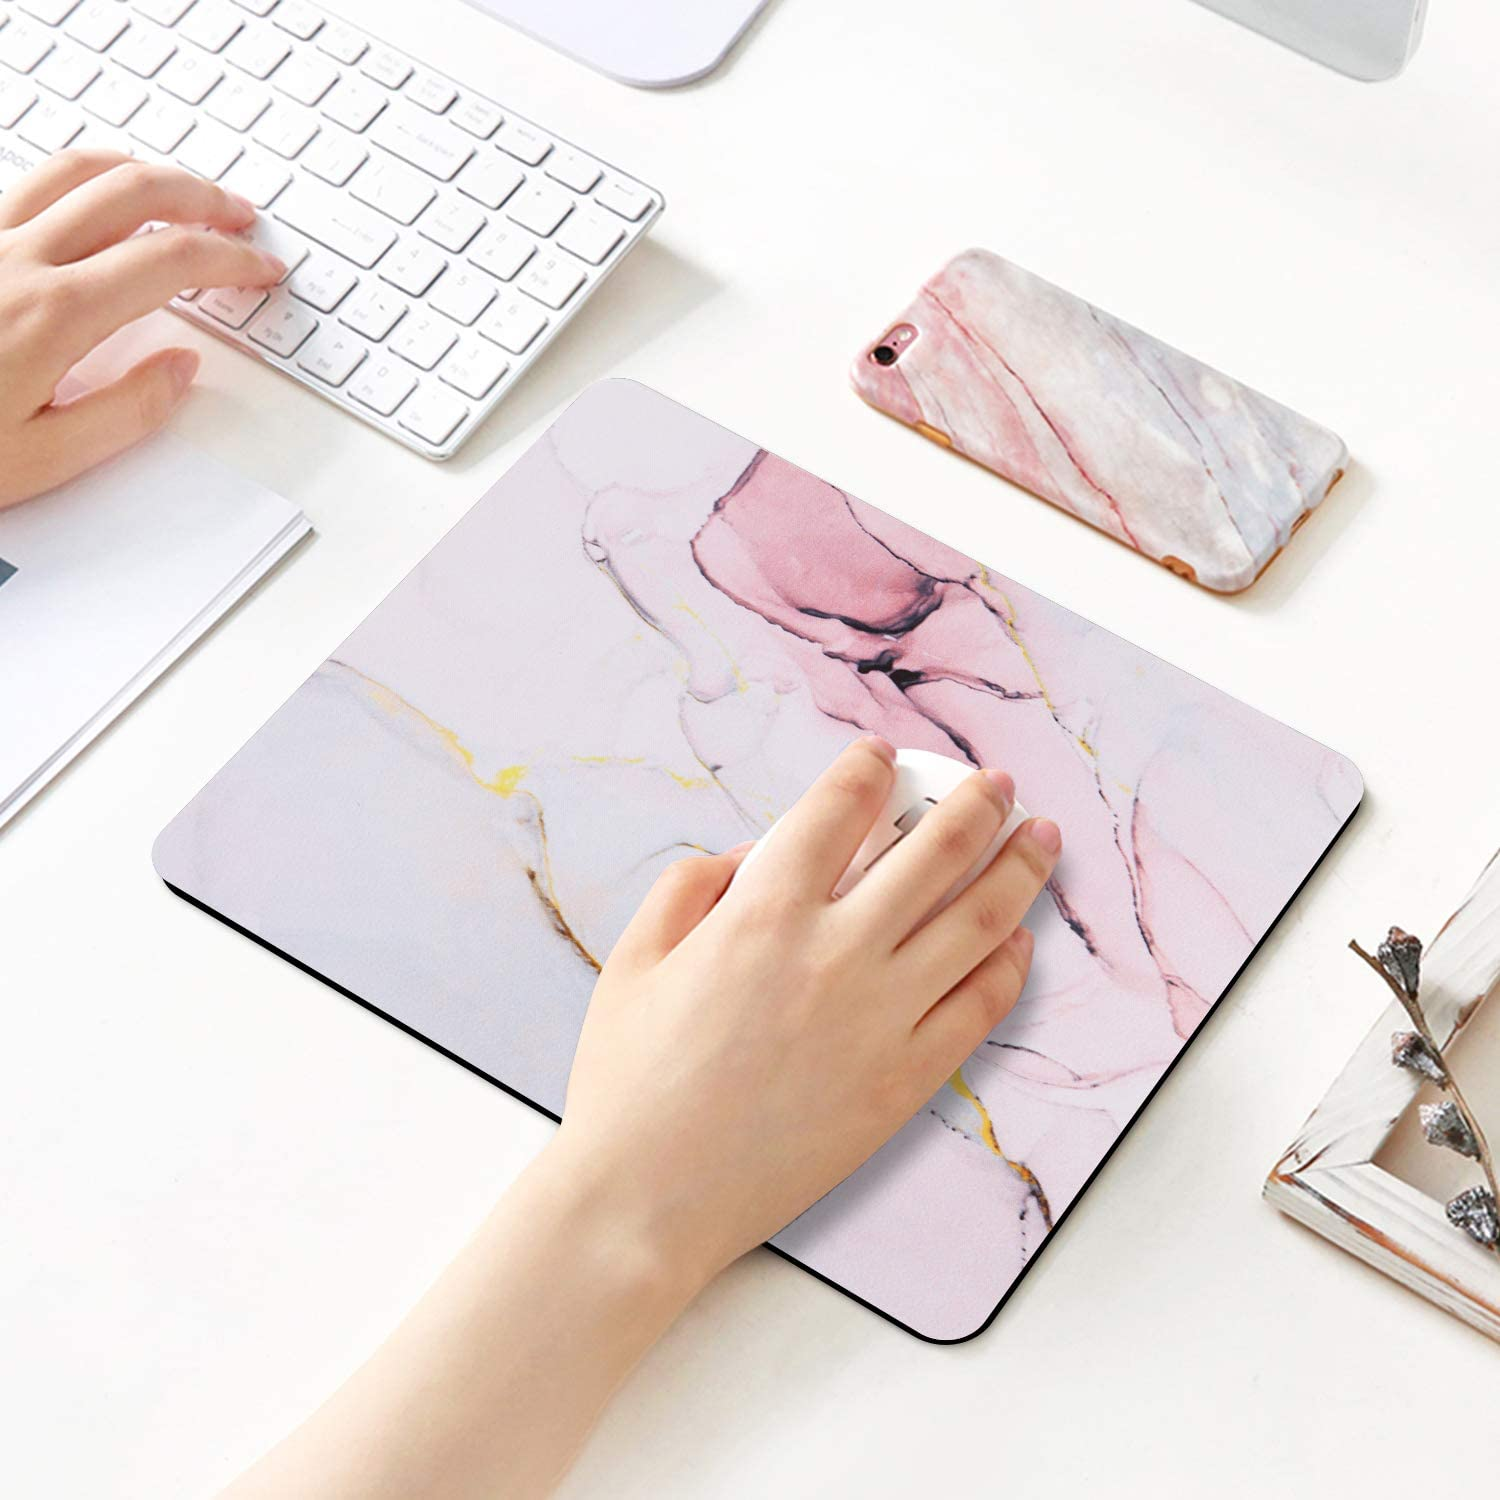 PC Ideal Partner for Working Or Game iLeadon Gaming Mouse Pad Customized Rectangle Non-Slip Rubber Mousepad with Mini Cute Funny Art Design for Mac Figure Painting Computers